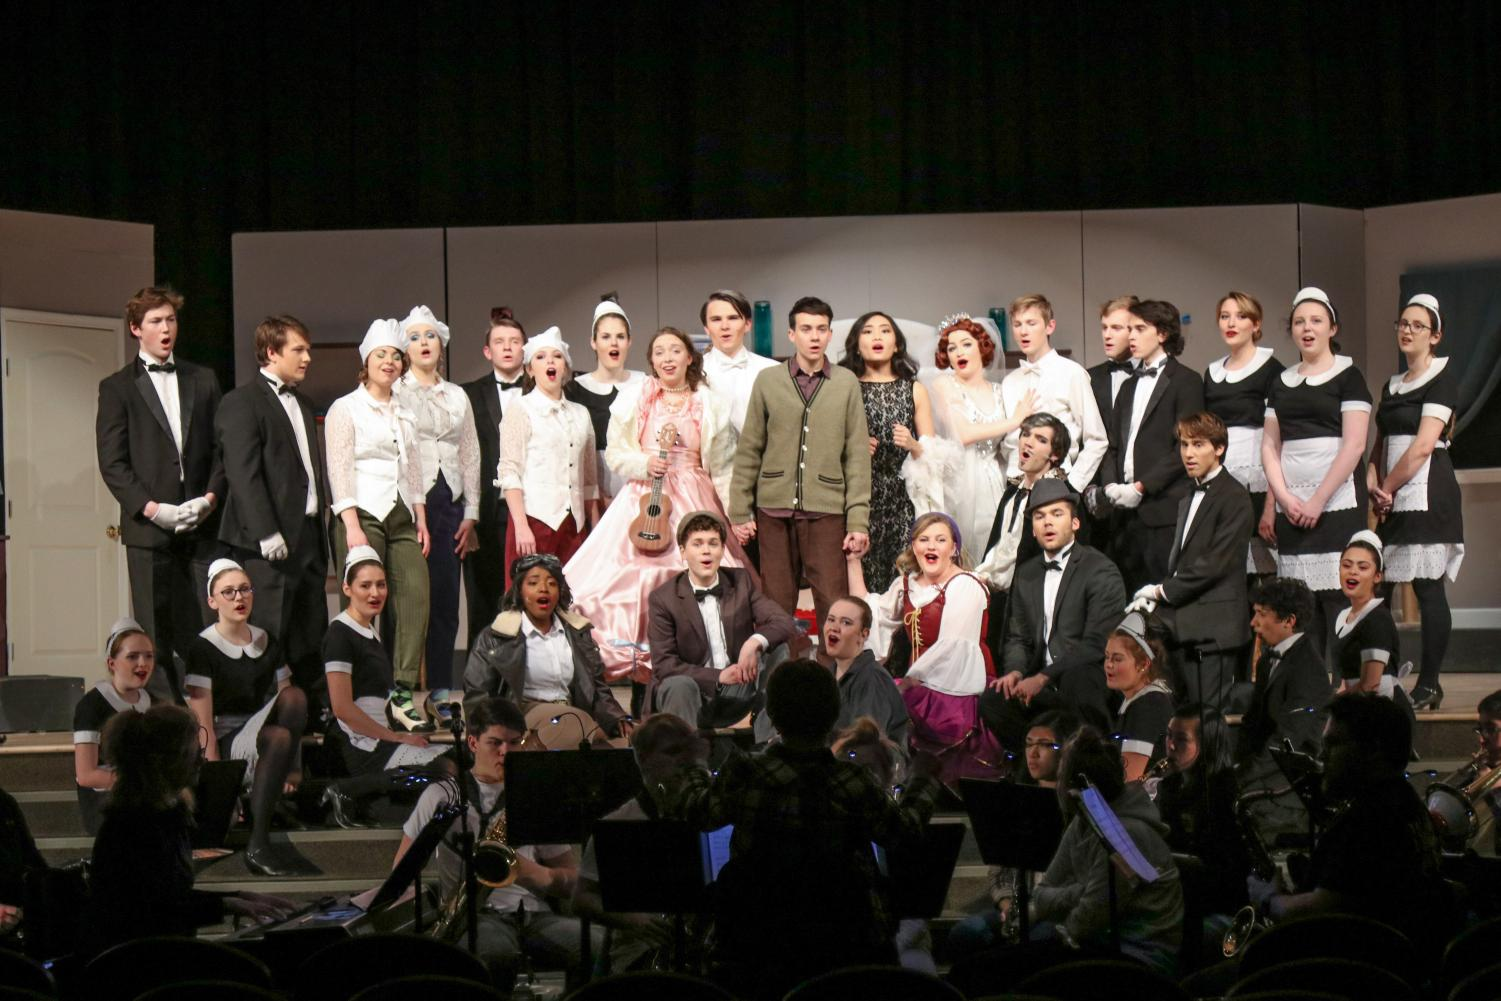 The entire cast of the hilarious musical comedy - The Drowsy Chaperone.